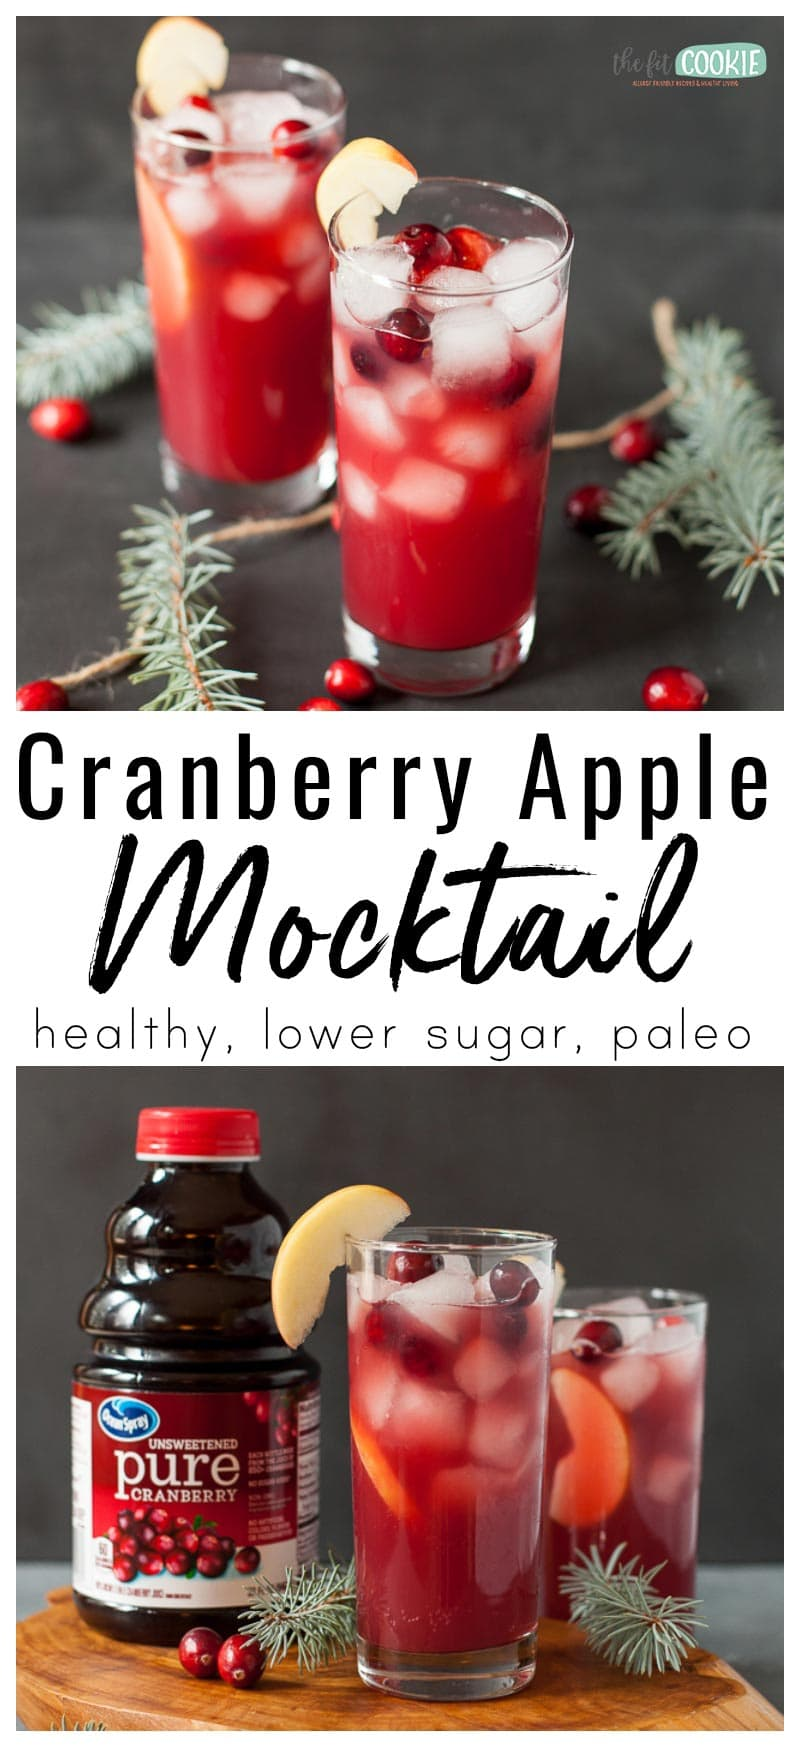 photo collage of cranberry apple mocktail in a tall glass